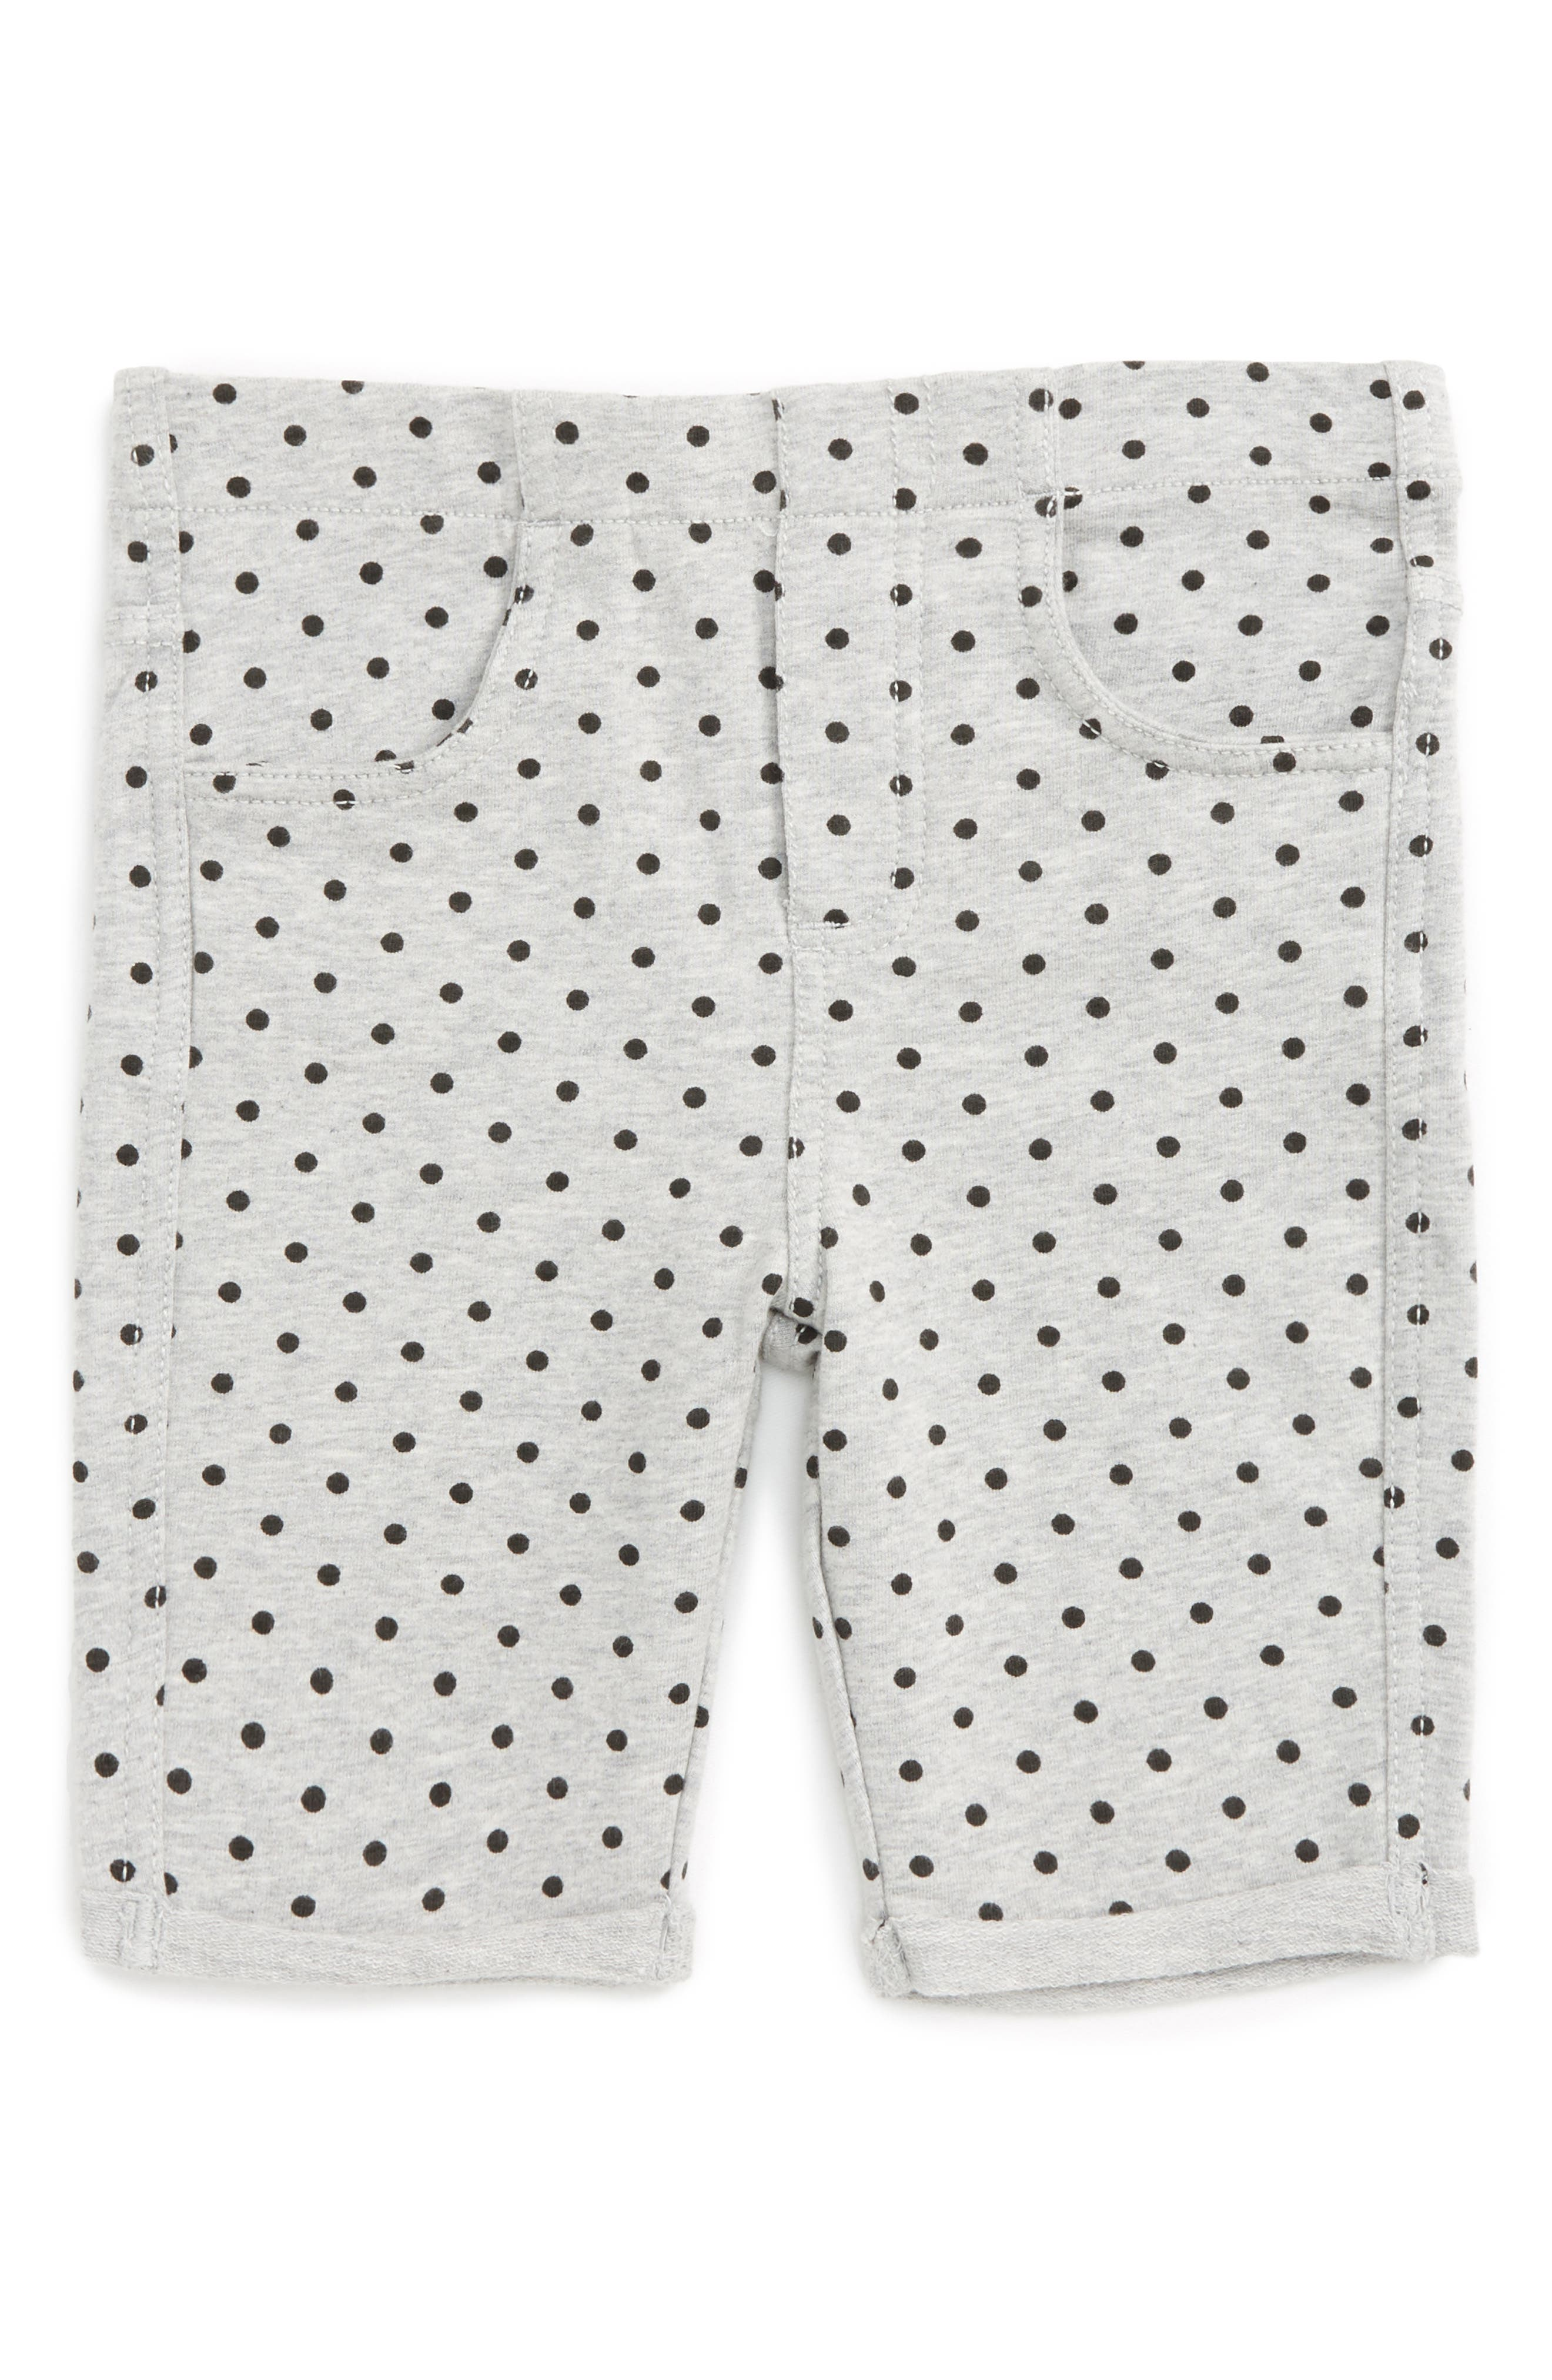 Tucker + Tate 'Jenna' Print Legging Shorts (Toddler Girls, Little Girls & Big Girls)